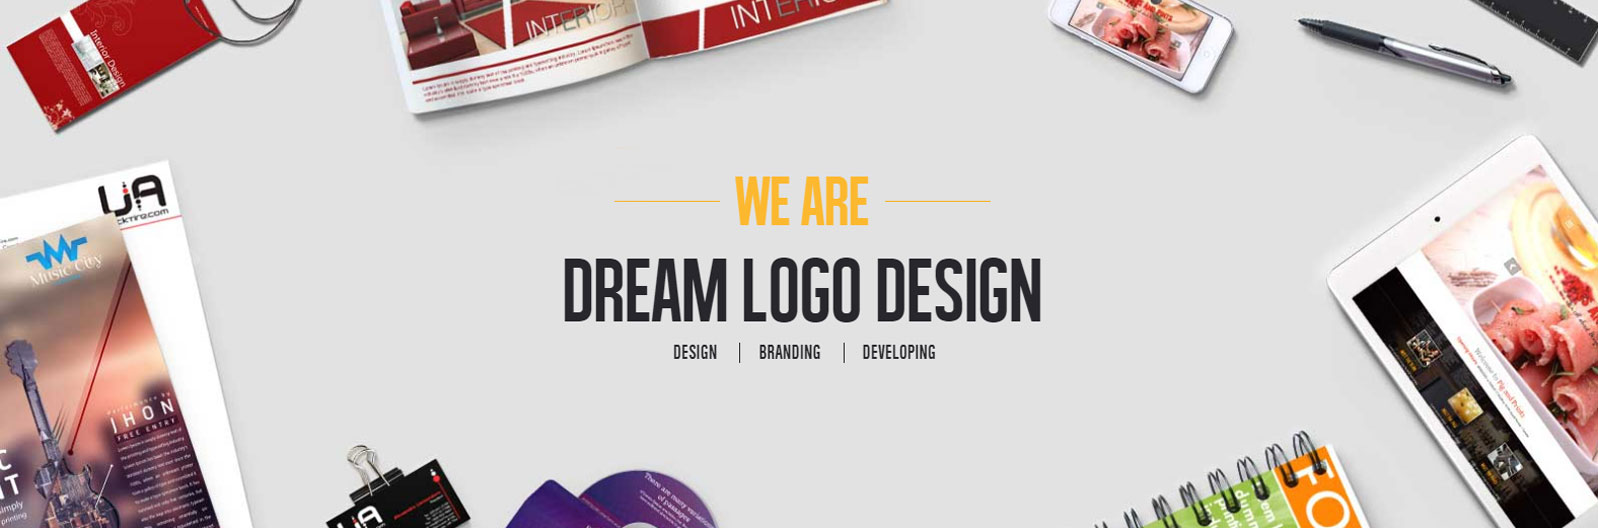 HBCU Lifestyle Education Logo Design – DreamLogoDesign